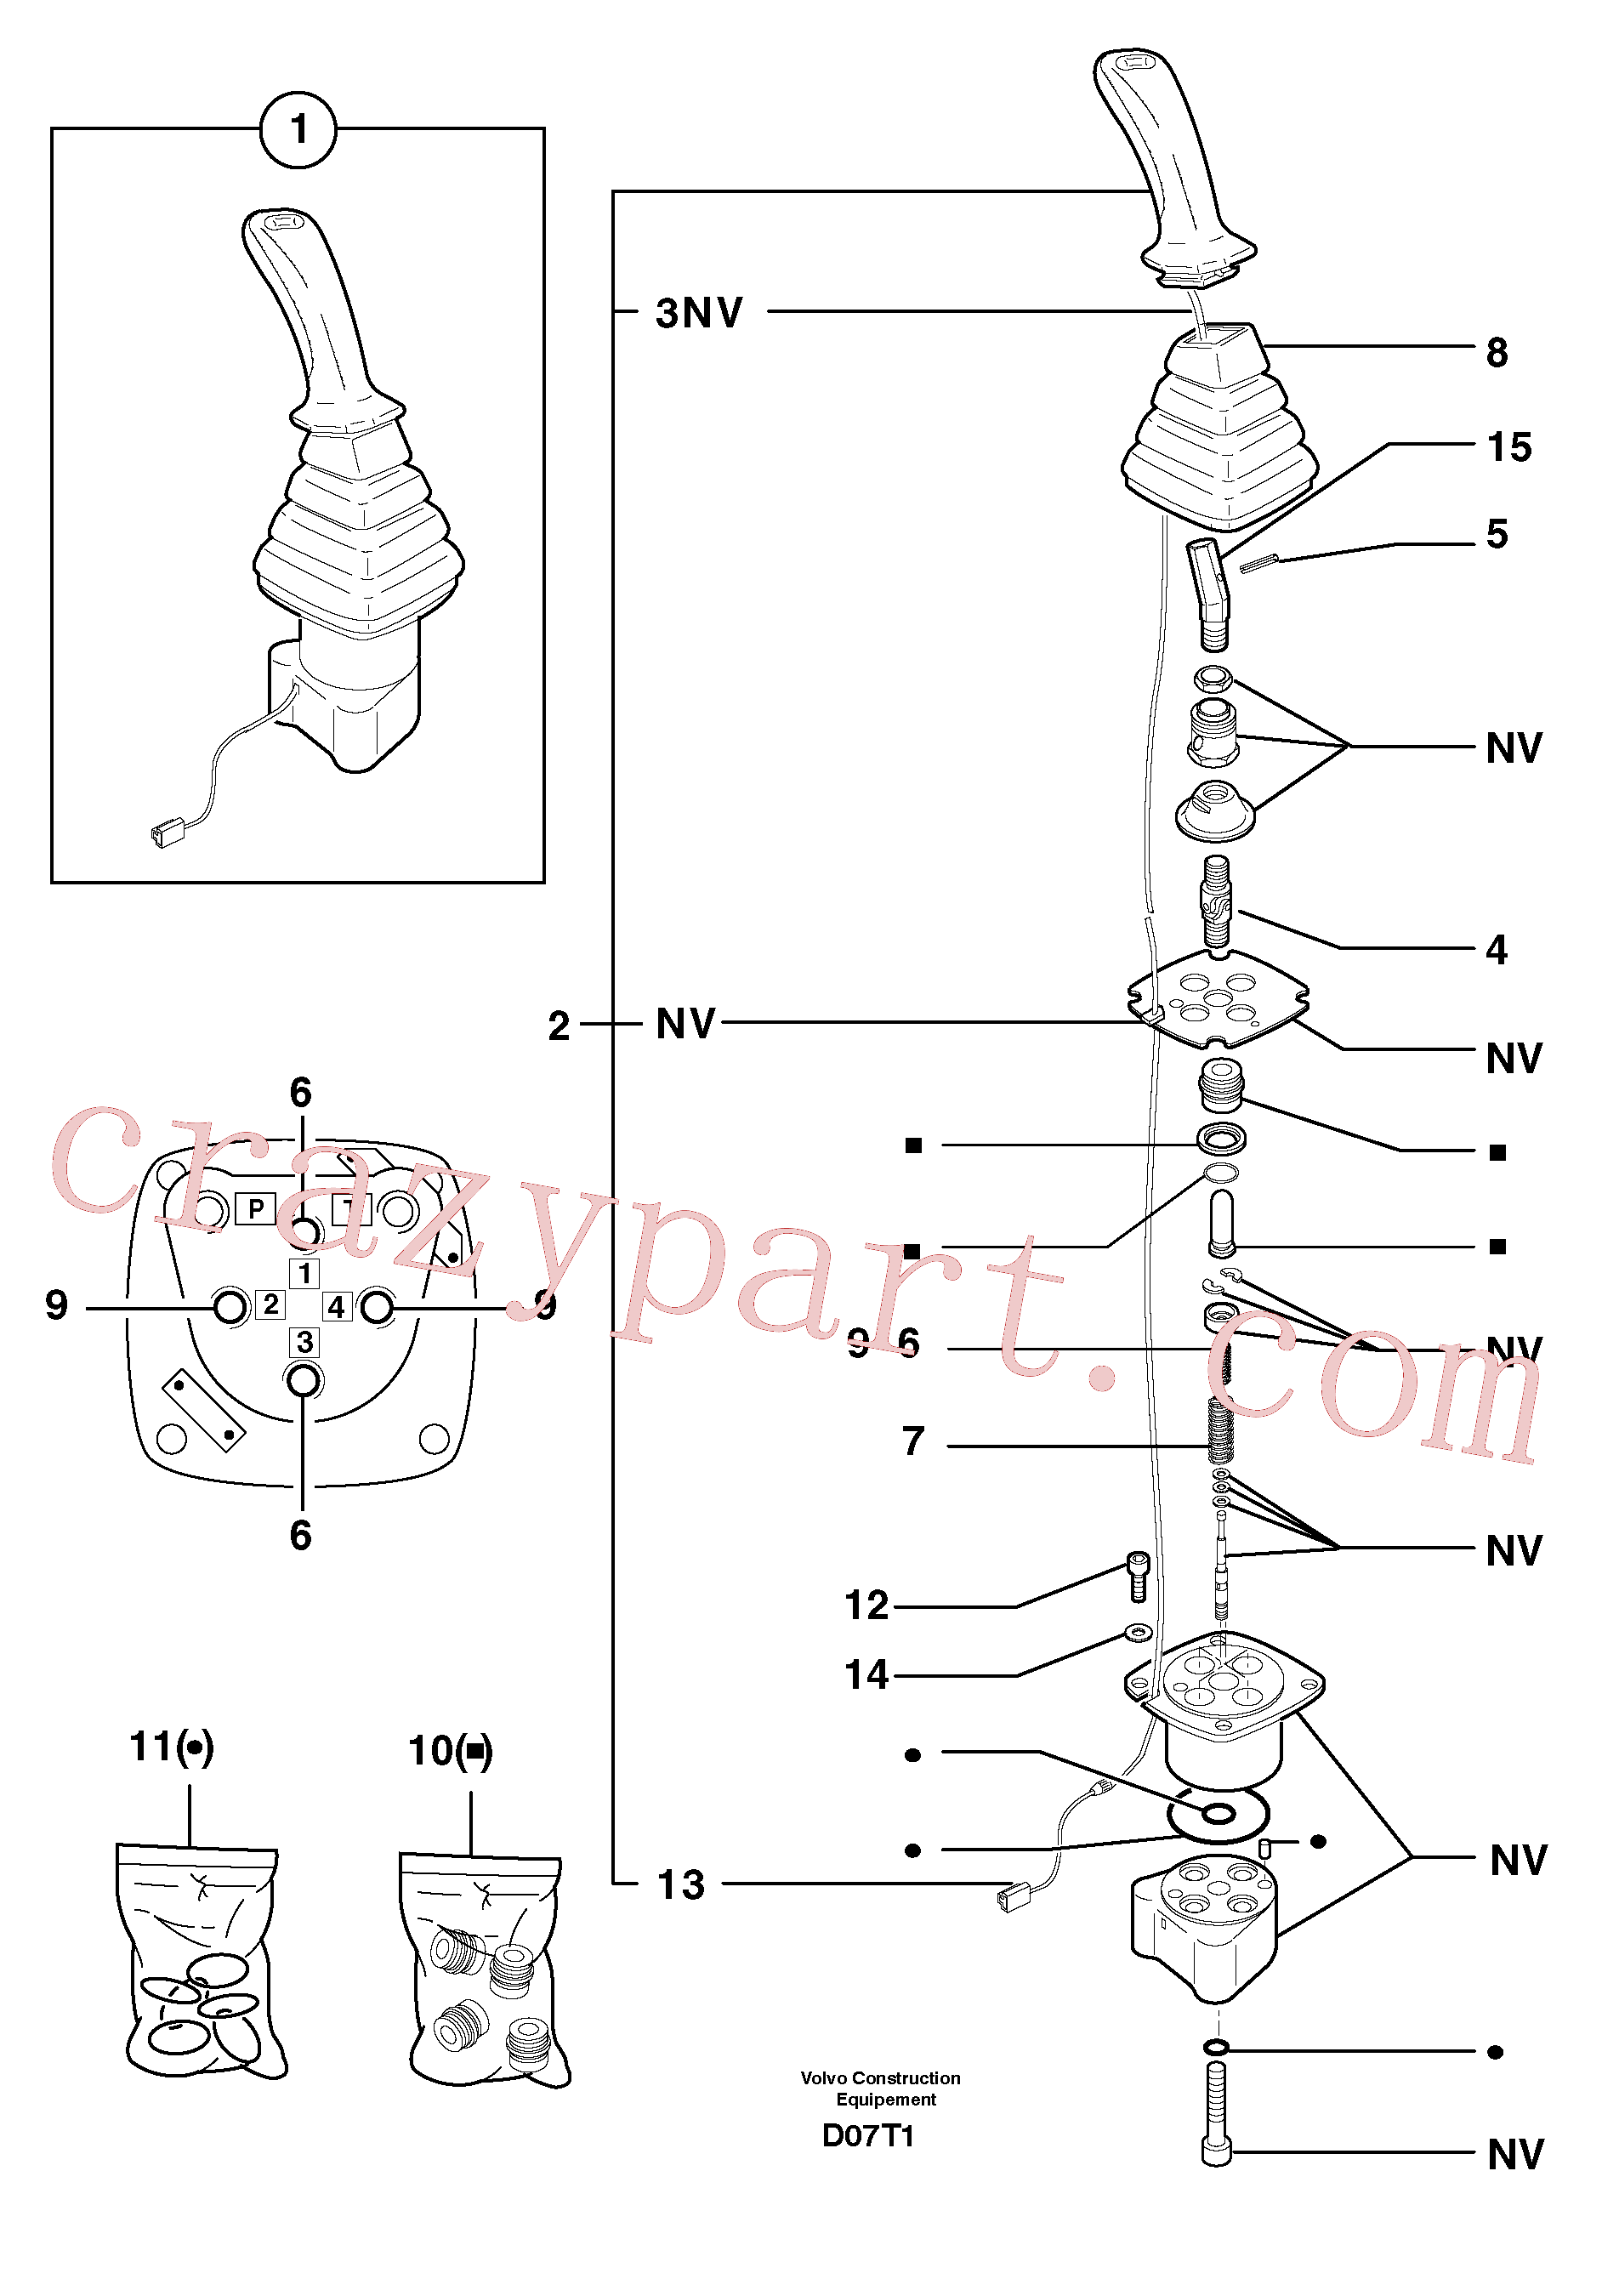 PJ7415653 for Volvo Control lever : dipper arm / slewing ( left )(D07T1 assembly)